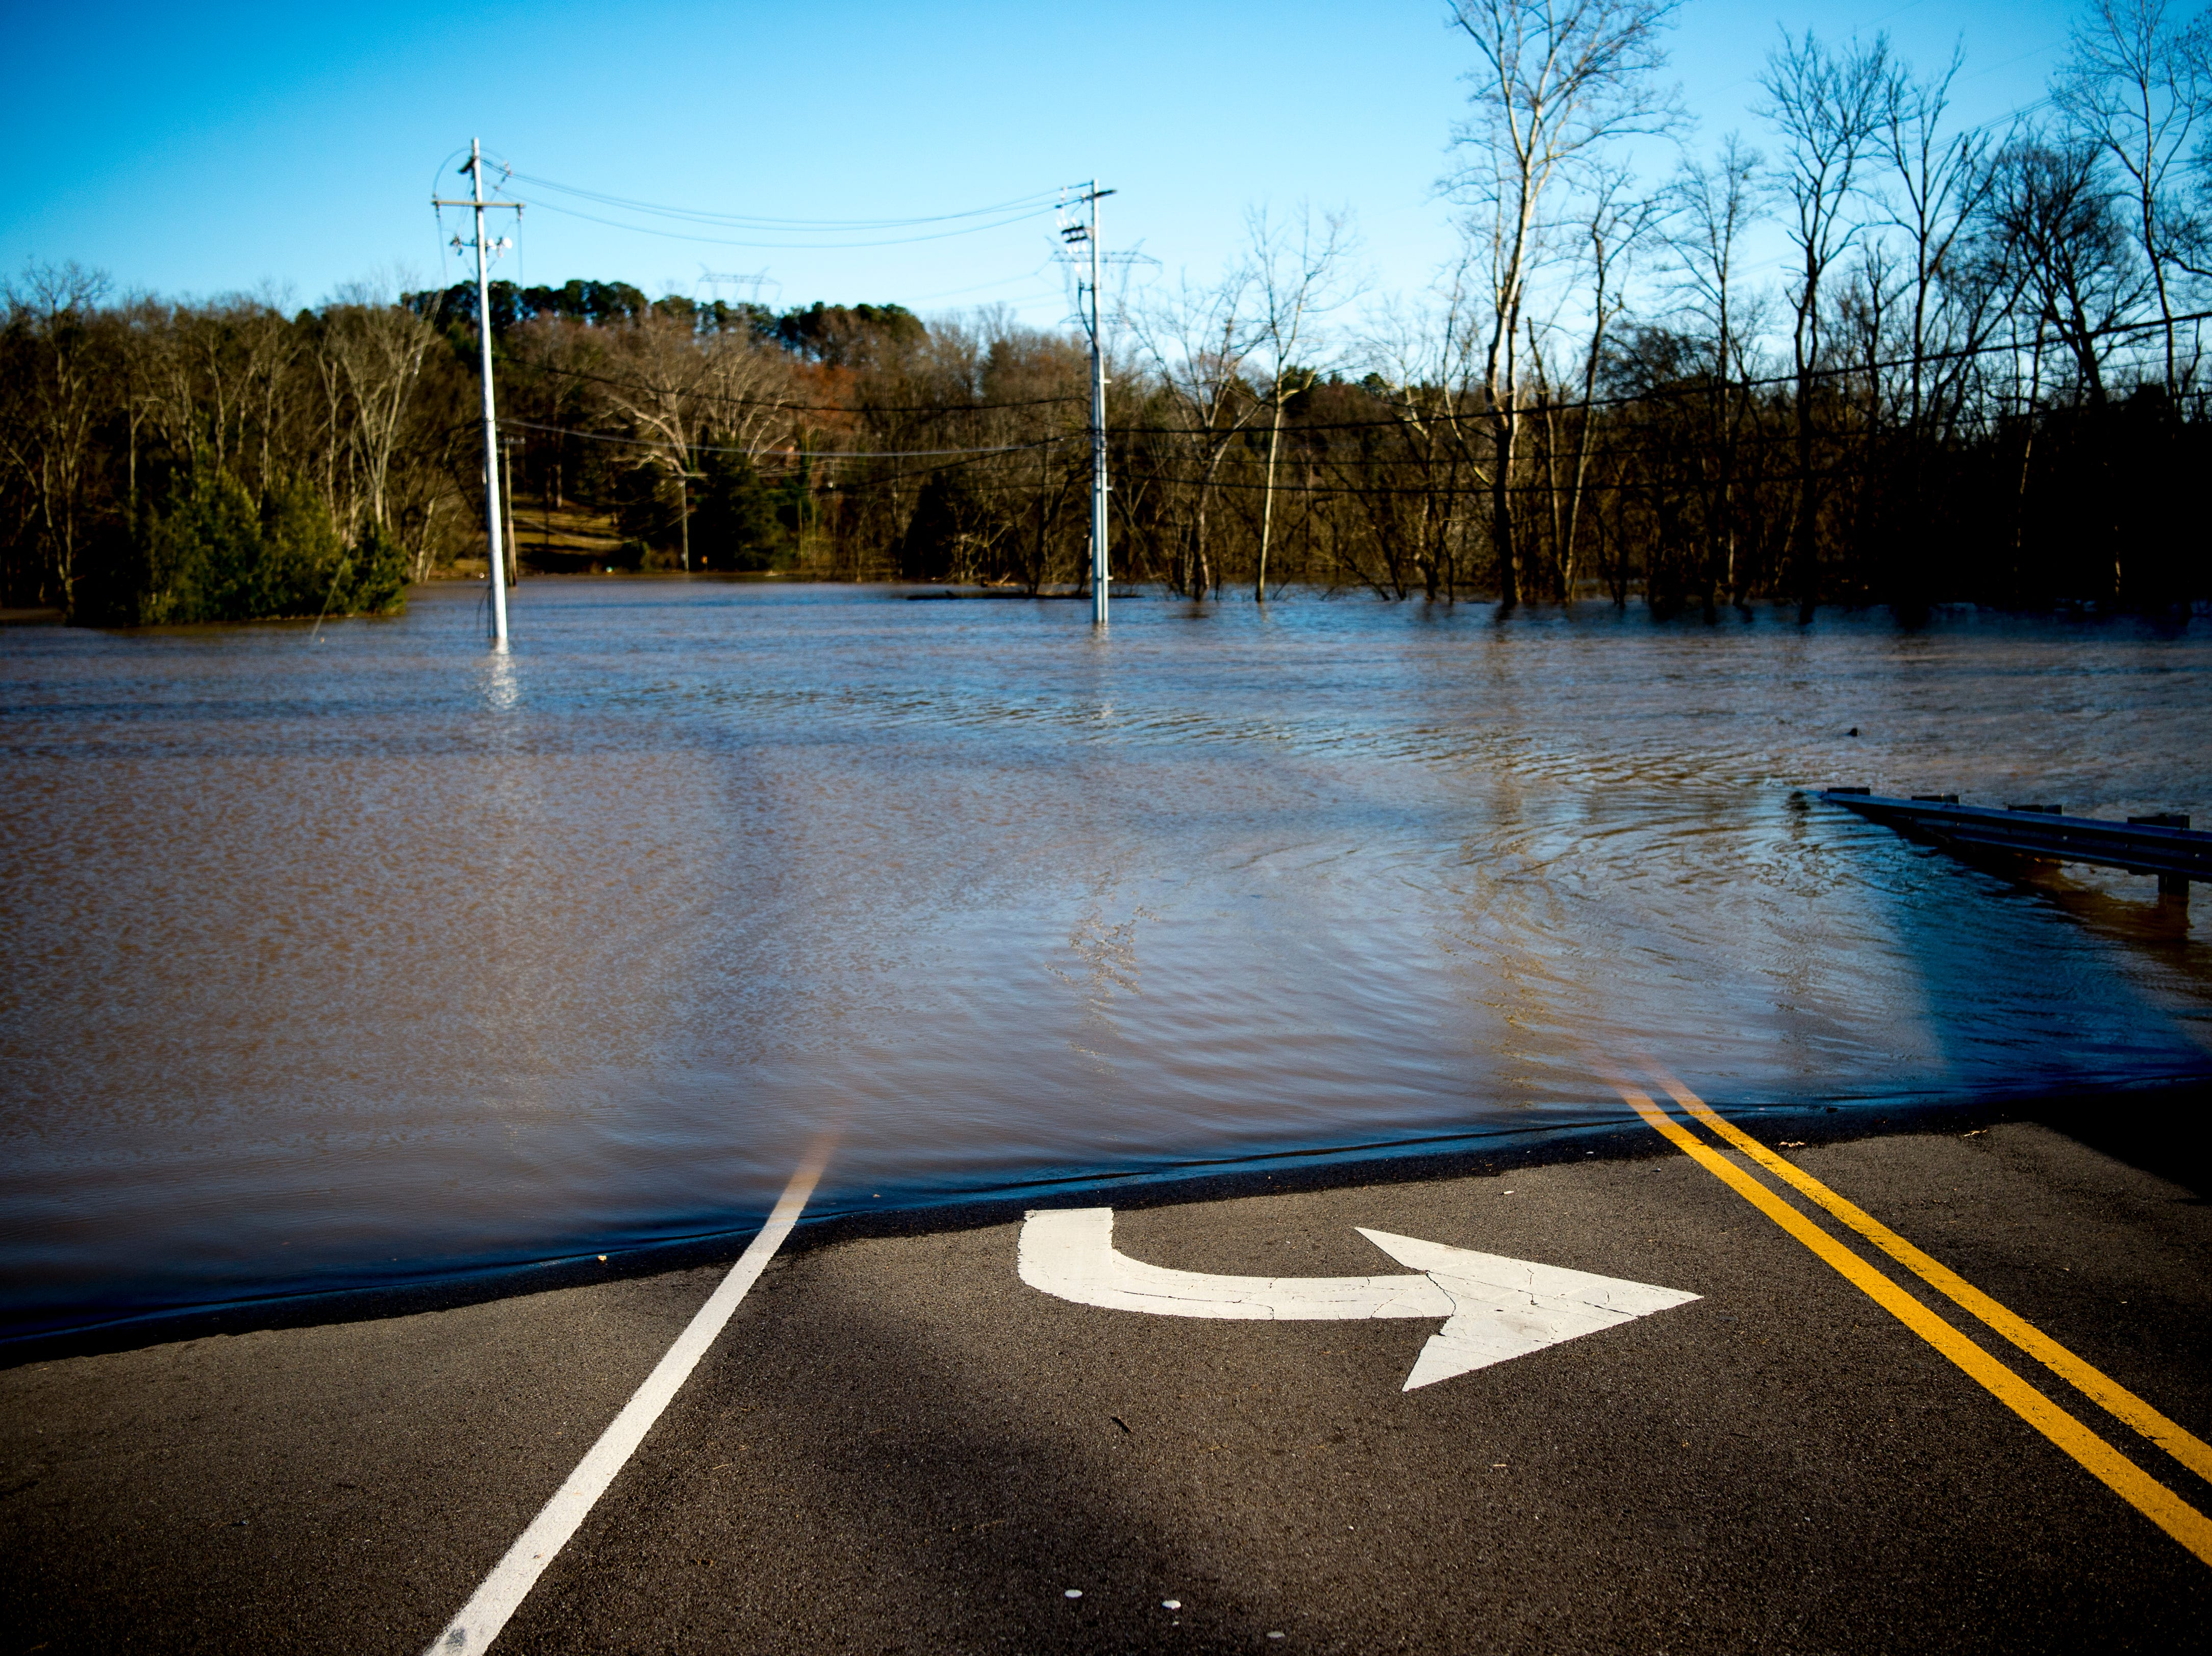 Water levels are seen near the Sunoco on Ebenezer Road and Gleason Drive in Knoxville, Tennessee on Sunday, February 24, 2019.